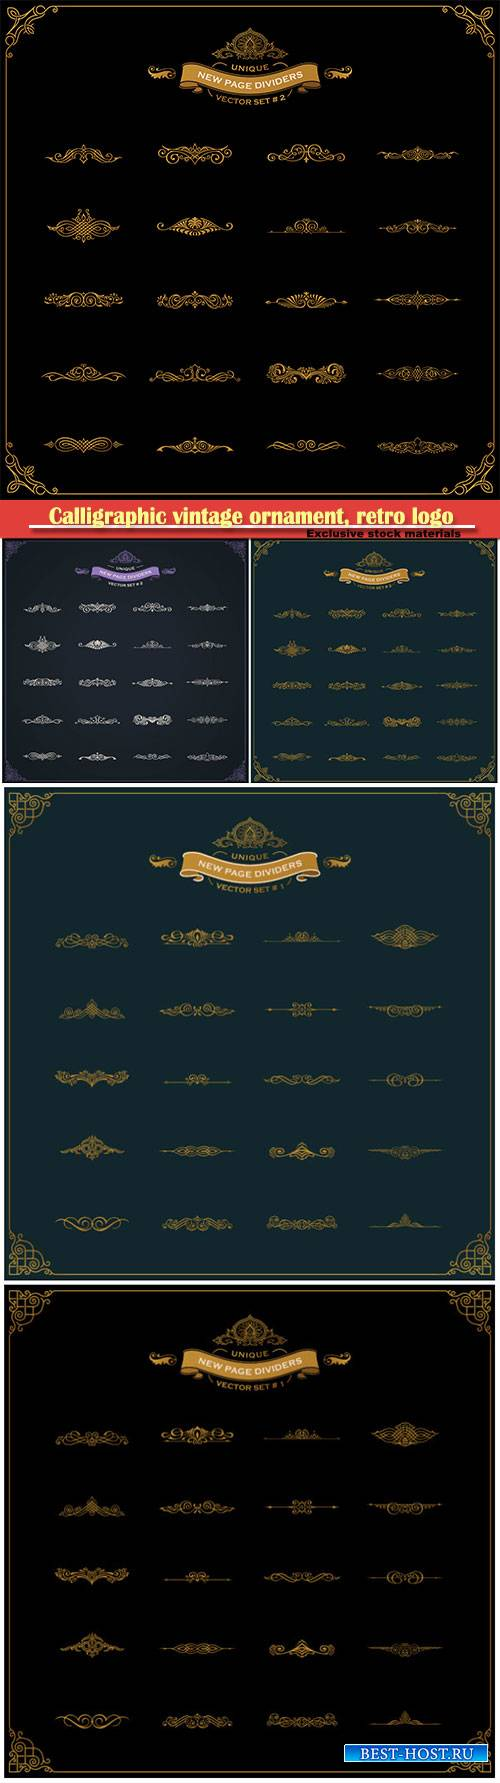 Calligraphic vintage ornament, retro logo and vector decorative border line